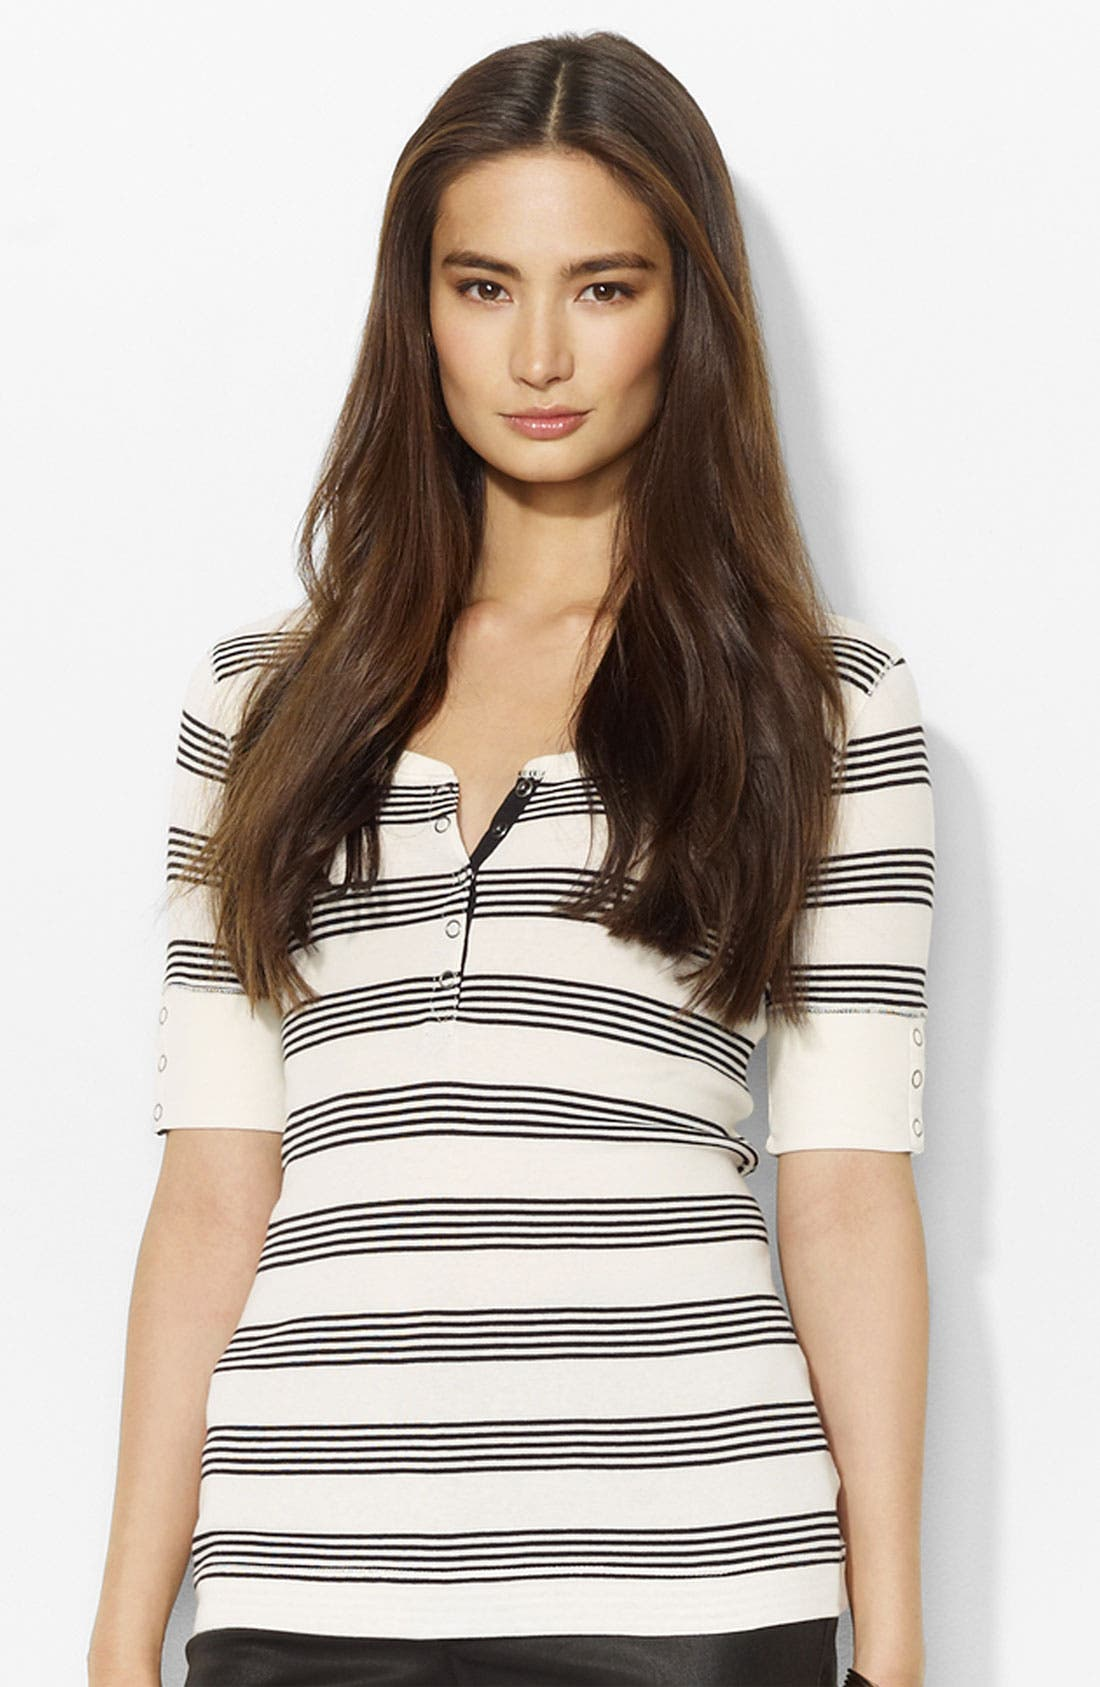 Alternate Image 1 Selected - Lauren Ralph Lauren Stripe Henley Tee (Petite) (Online Exclusive)